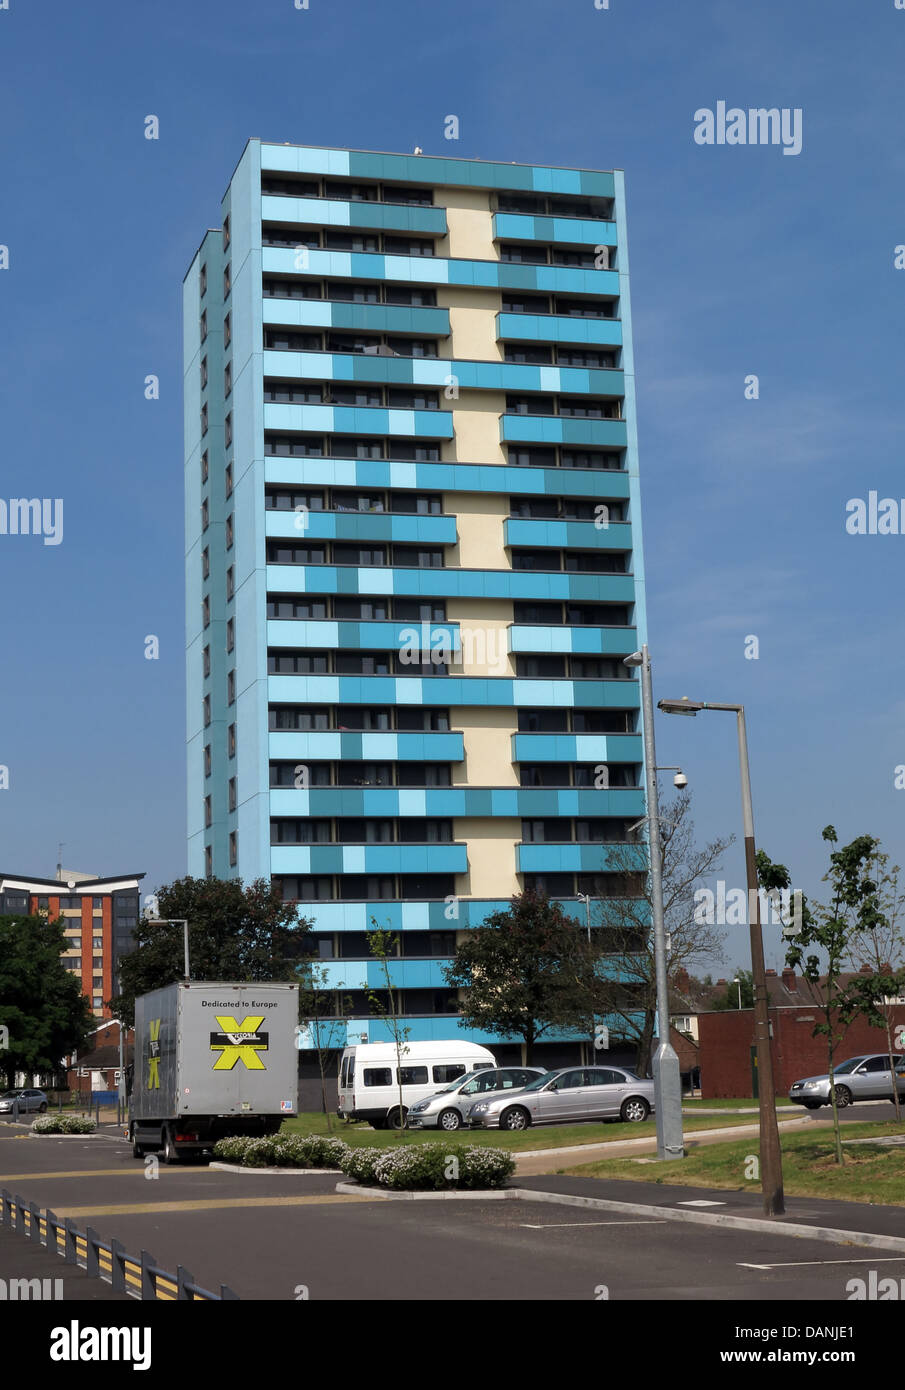 near,Wolverhampton,England,UK,painted,blue,and,Teal,refurb,refurbished,ALMO,housing,RP,registered,Provider,Sandwell,Dudley,Birmingham,tall,reaching,to,the,sky,high,rise,highrise,living,poor,people,home,homes,floor,1st,2nd,residential,skyscraper,housing,trust,group,social,RSL,Council,estate,estates,gotonysmith,top,floor,3rd,10th,12th,13th,14th,15th,16th,17th,roof,city,council,sale,of,the,apartments,shared,ownership,lease,leaseholder,leaseholders,public,construction,policy,area,technology,inside,insidehousing,CIH,NHF,DCLG,Private,Registered,Providers,of,Social,Housing,PRPs,PRP,PRPs,RTB,Right,To,Buy,legislation,costs,Section,20,section20,consultation,choice-based,lettings,CBL,abritas,tenants,PRS,tenant,homeless,asylum,seeker,seekers,Arms,Length,Management,Organisation,decent,homes,affordable,mutual,exchange,B706QG,B70,6QG,Buy Pictures of,Buy Images Of